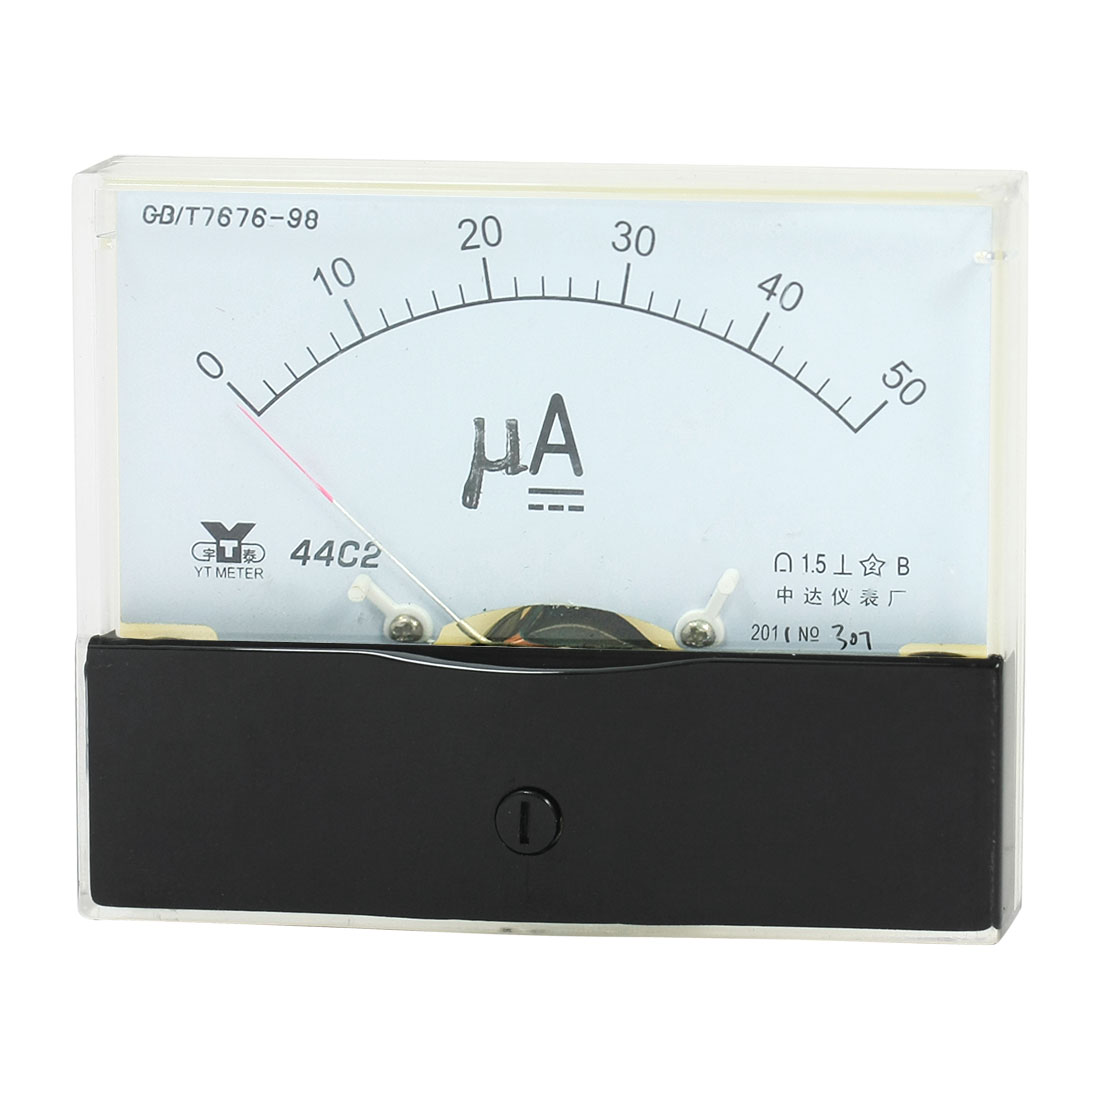 Rectangle Measurement Tool Analog Panel Ammeter Gauge DC 0 - 50uA Measuring Range 44C2